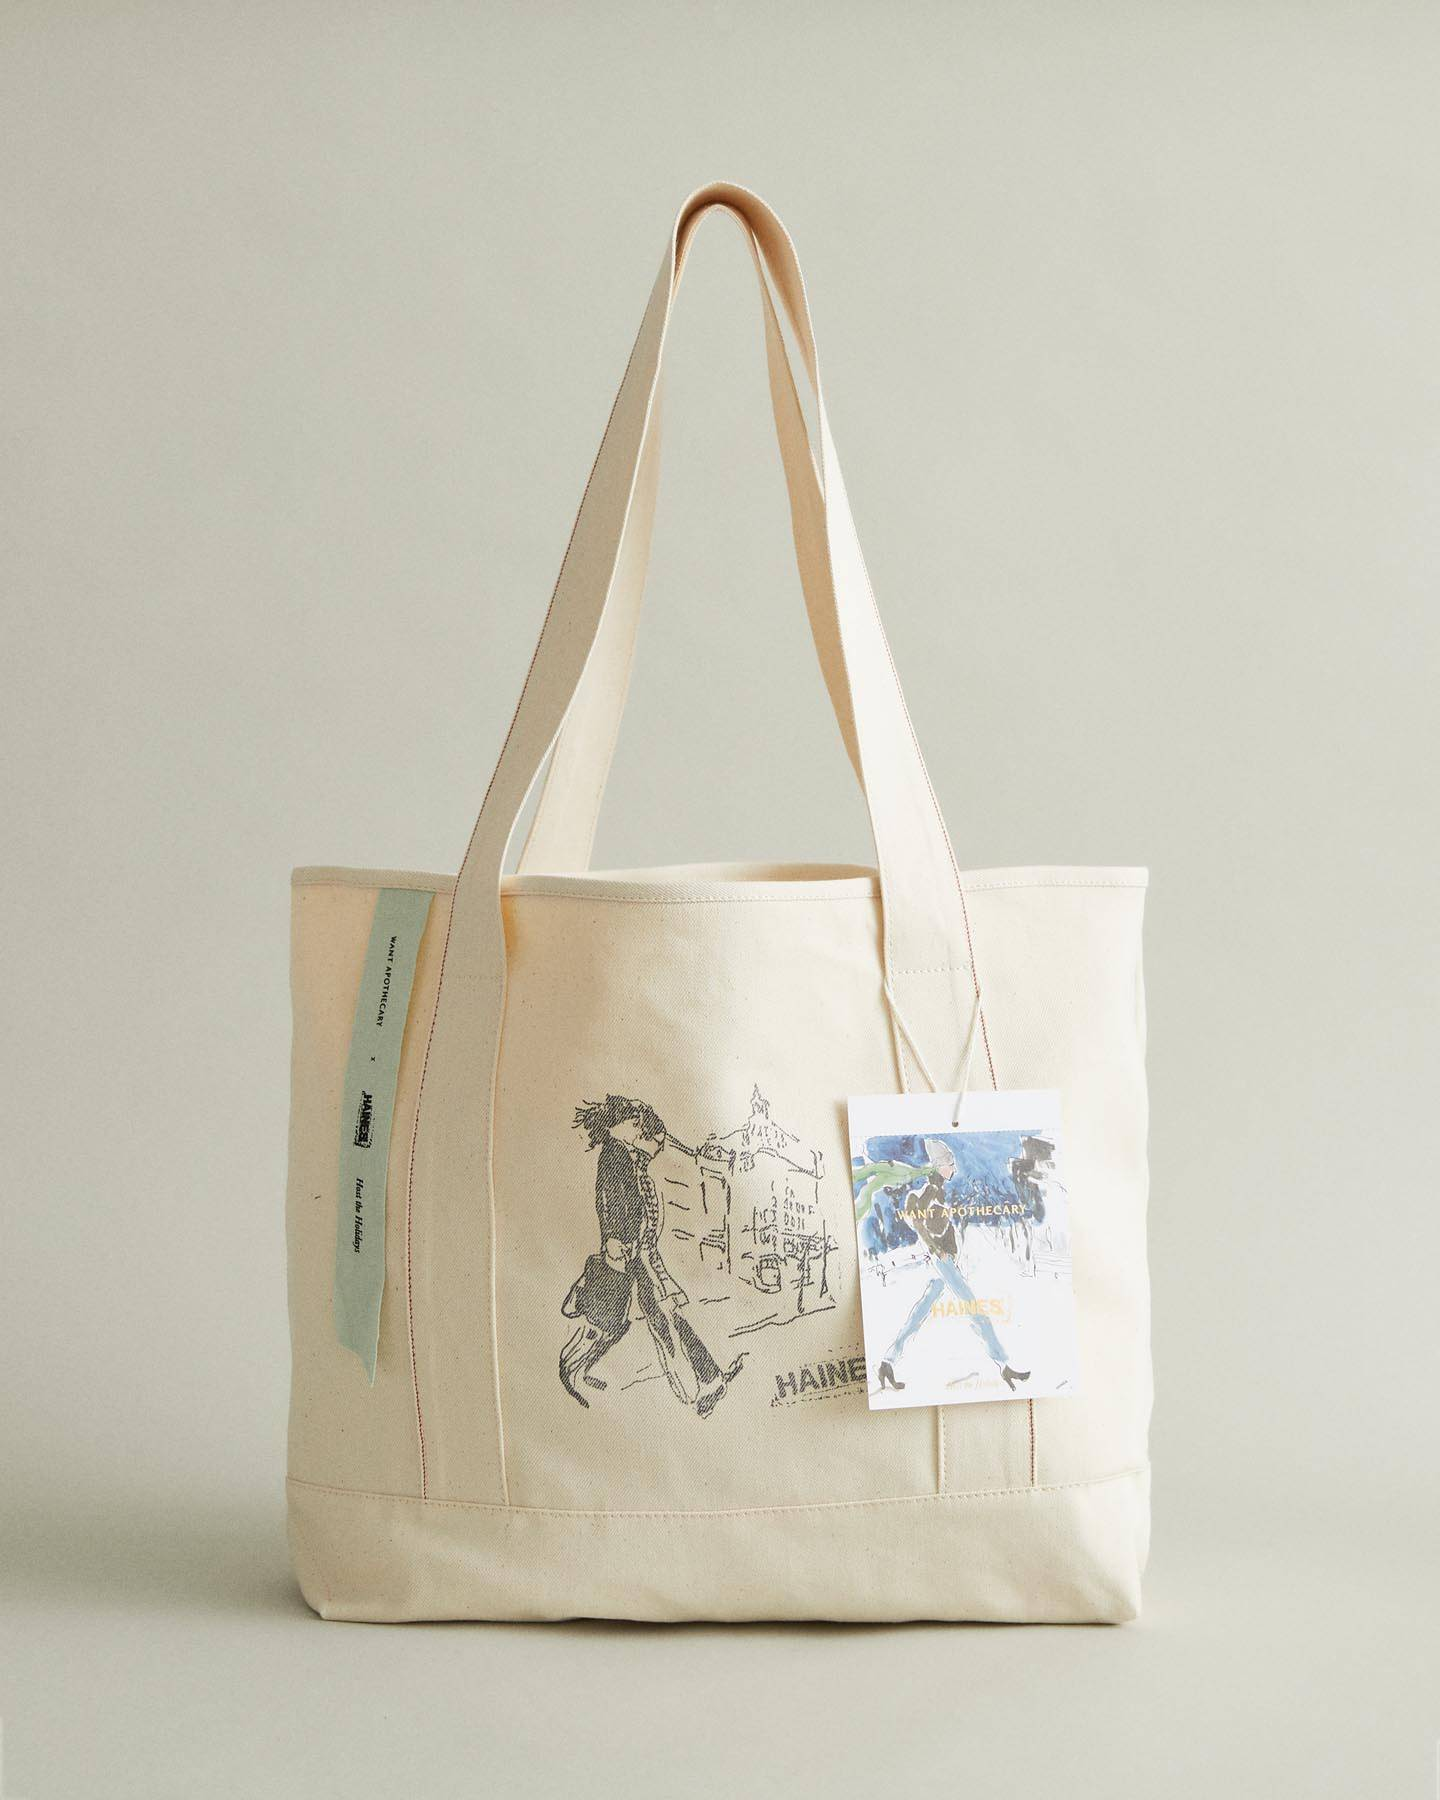 https://int.wantapothecary.com/products/richard-haines-shopper-tote